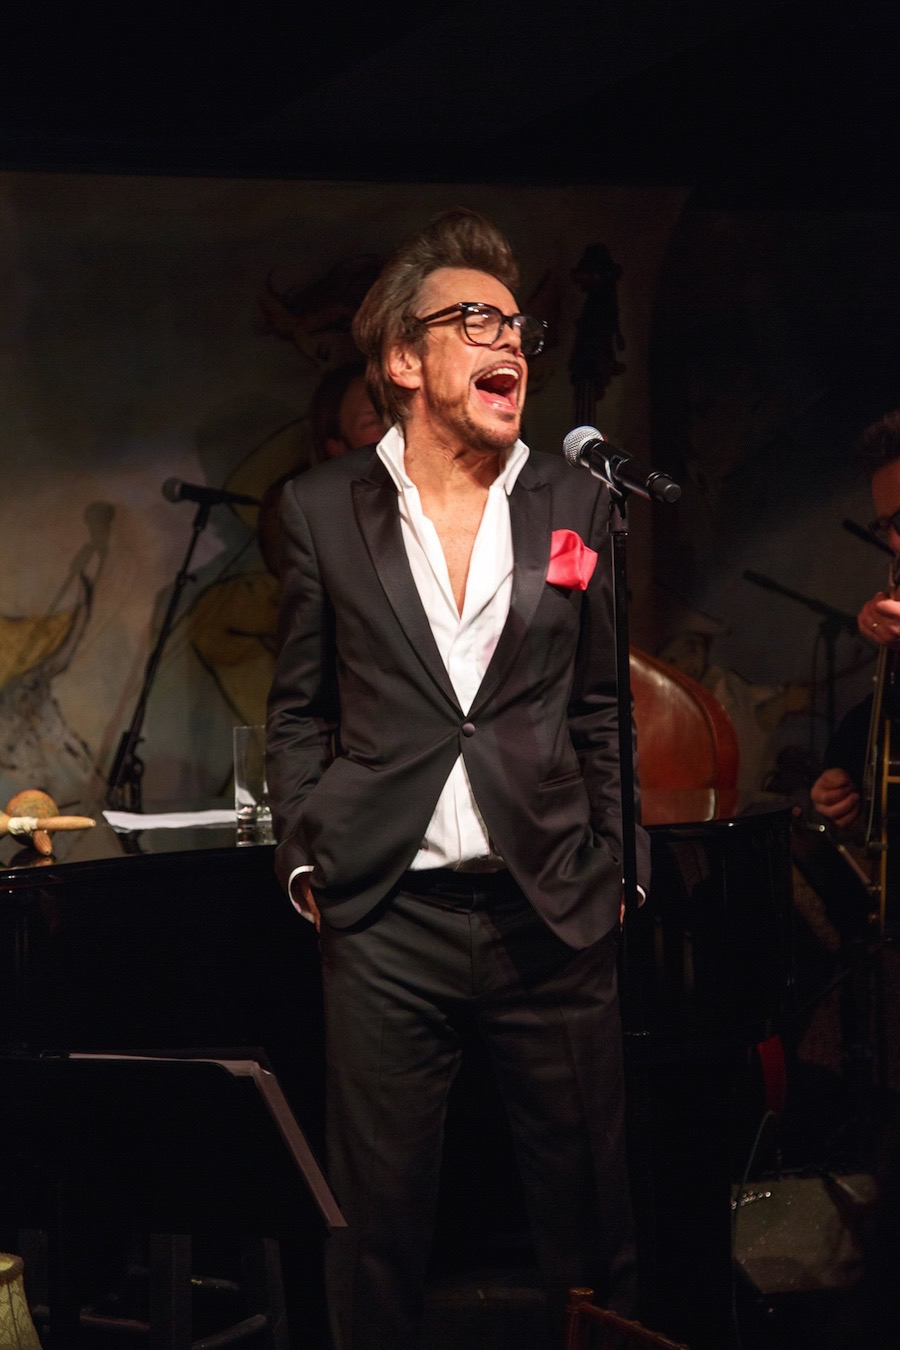 Photos: Michael Wilhoite. TAGS; BUSTER POINDEXTER